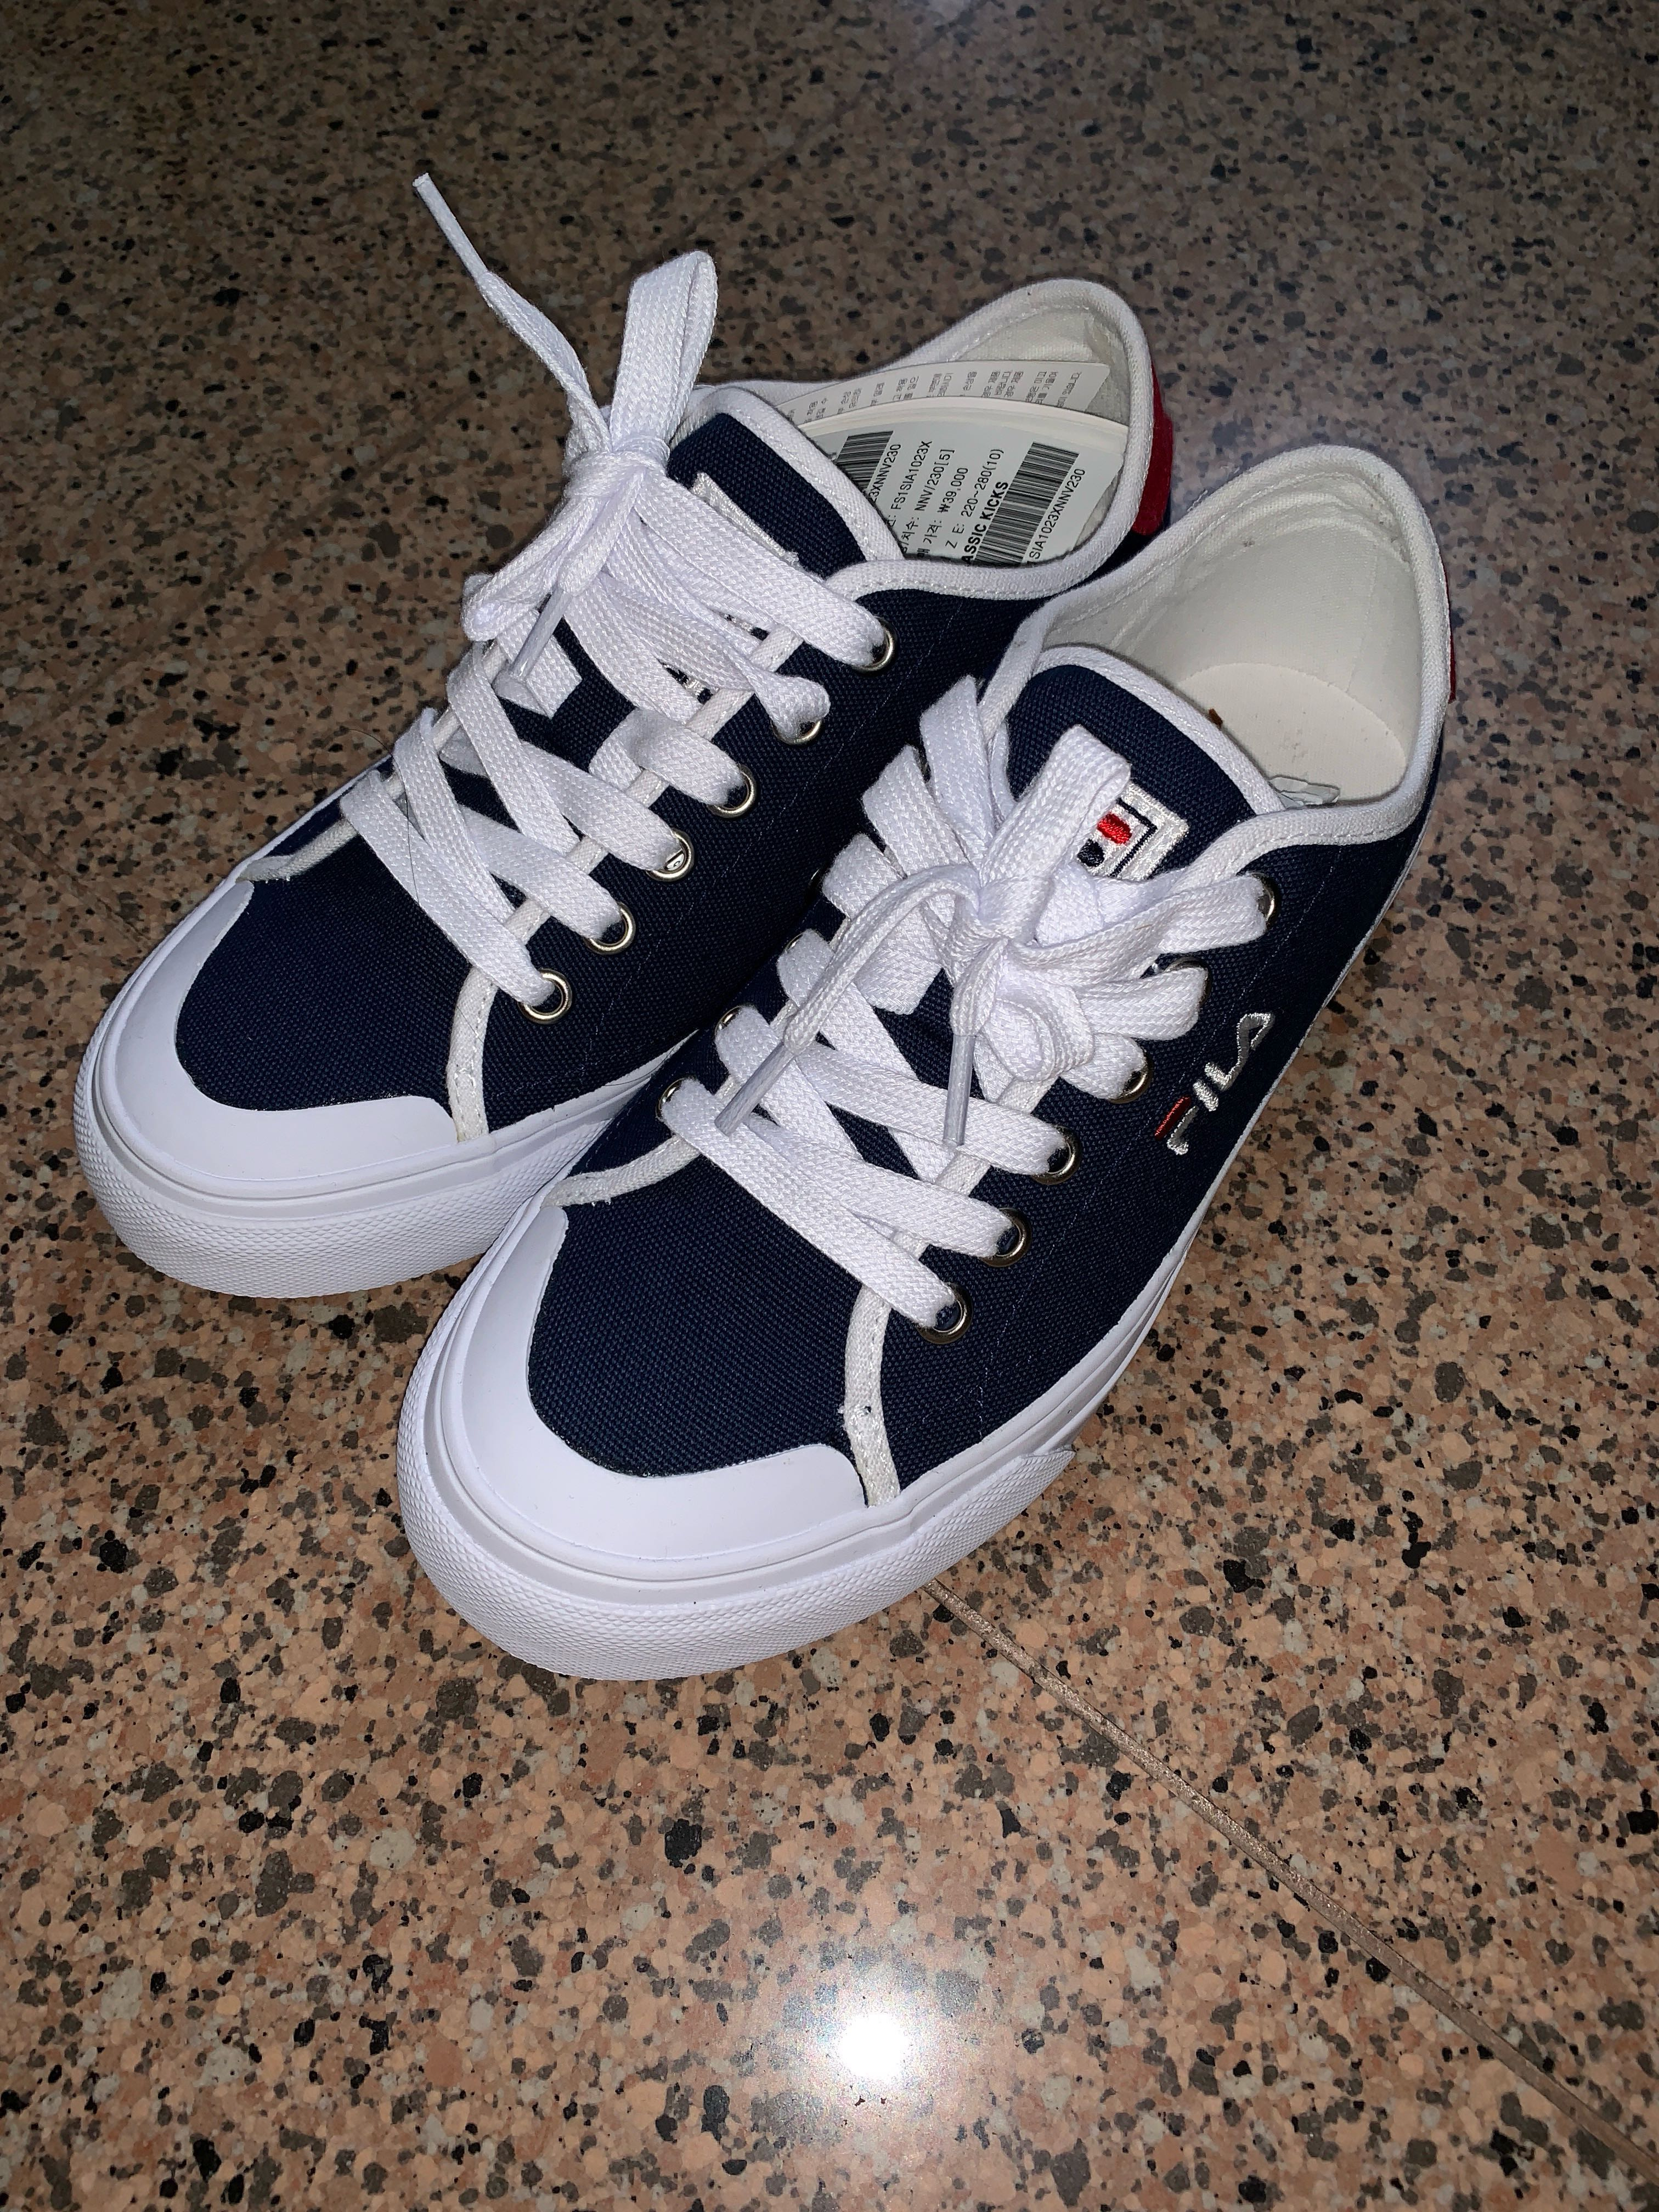 2bcc655cd8 Home · Women s Fashion · Shoes · Sneakers. photo photo ...